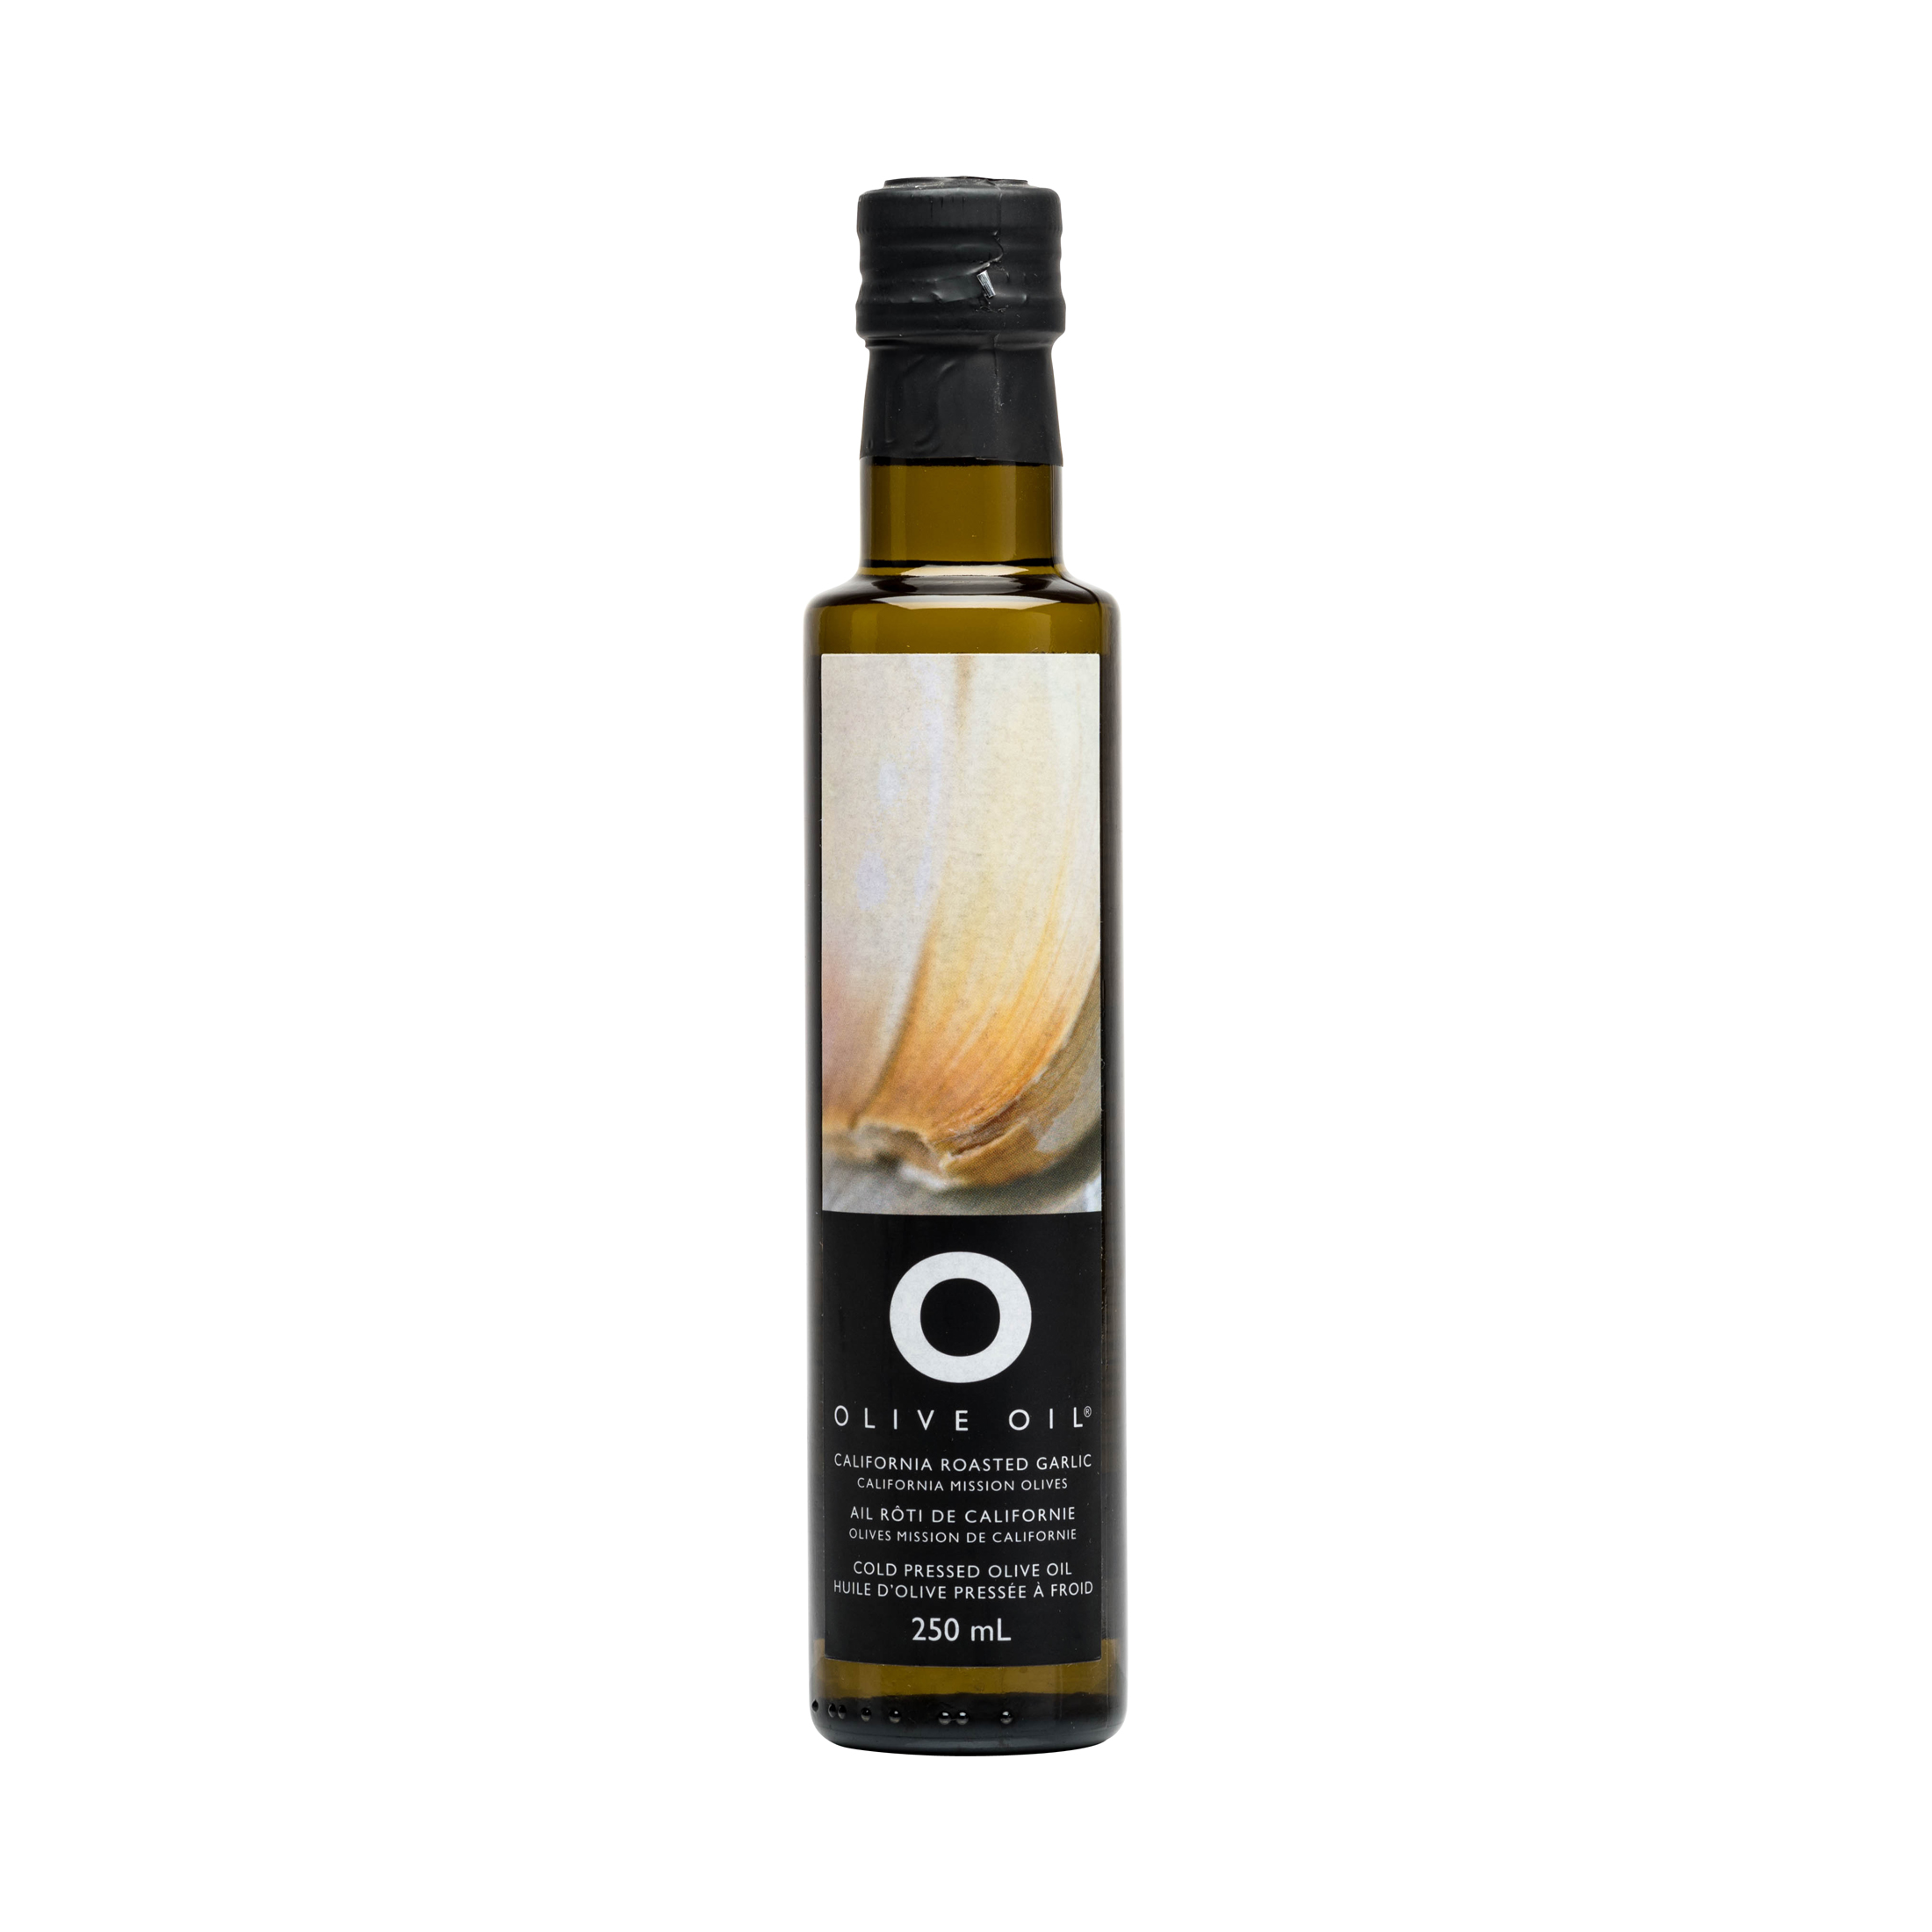 O ROASTED GARLIC OLIVE OIL